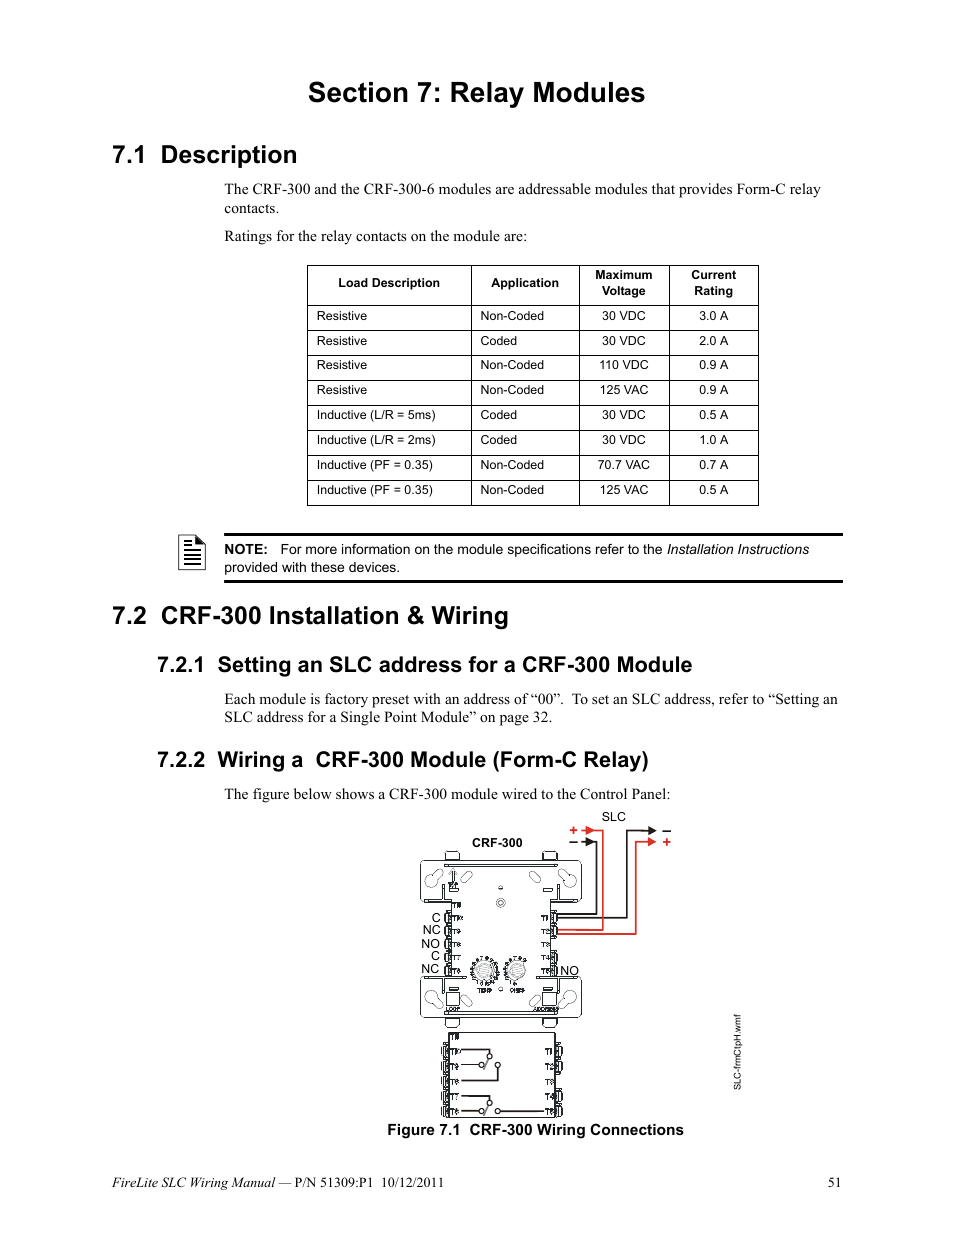 hight resolution of section 7 relay modules 1 description 2 crf 300 installation wiring fire lite slc intelligent control panel wiring manual user manual page 51 80